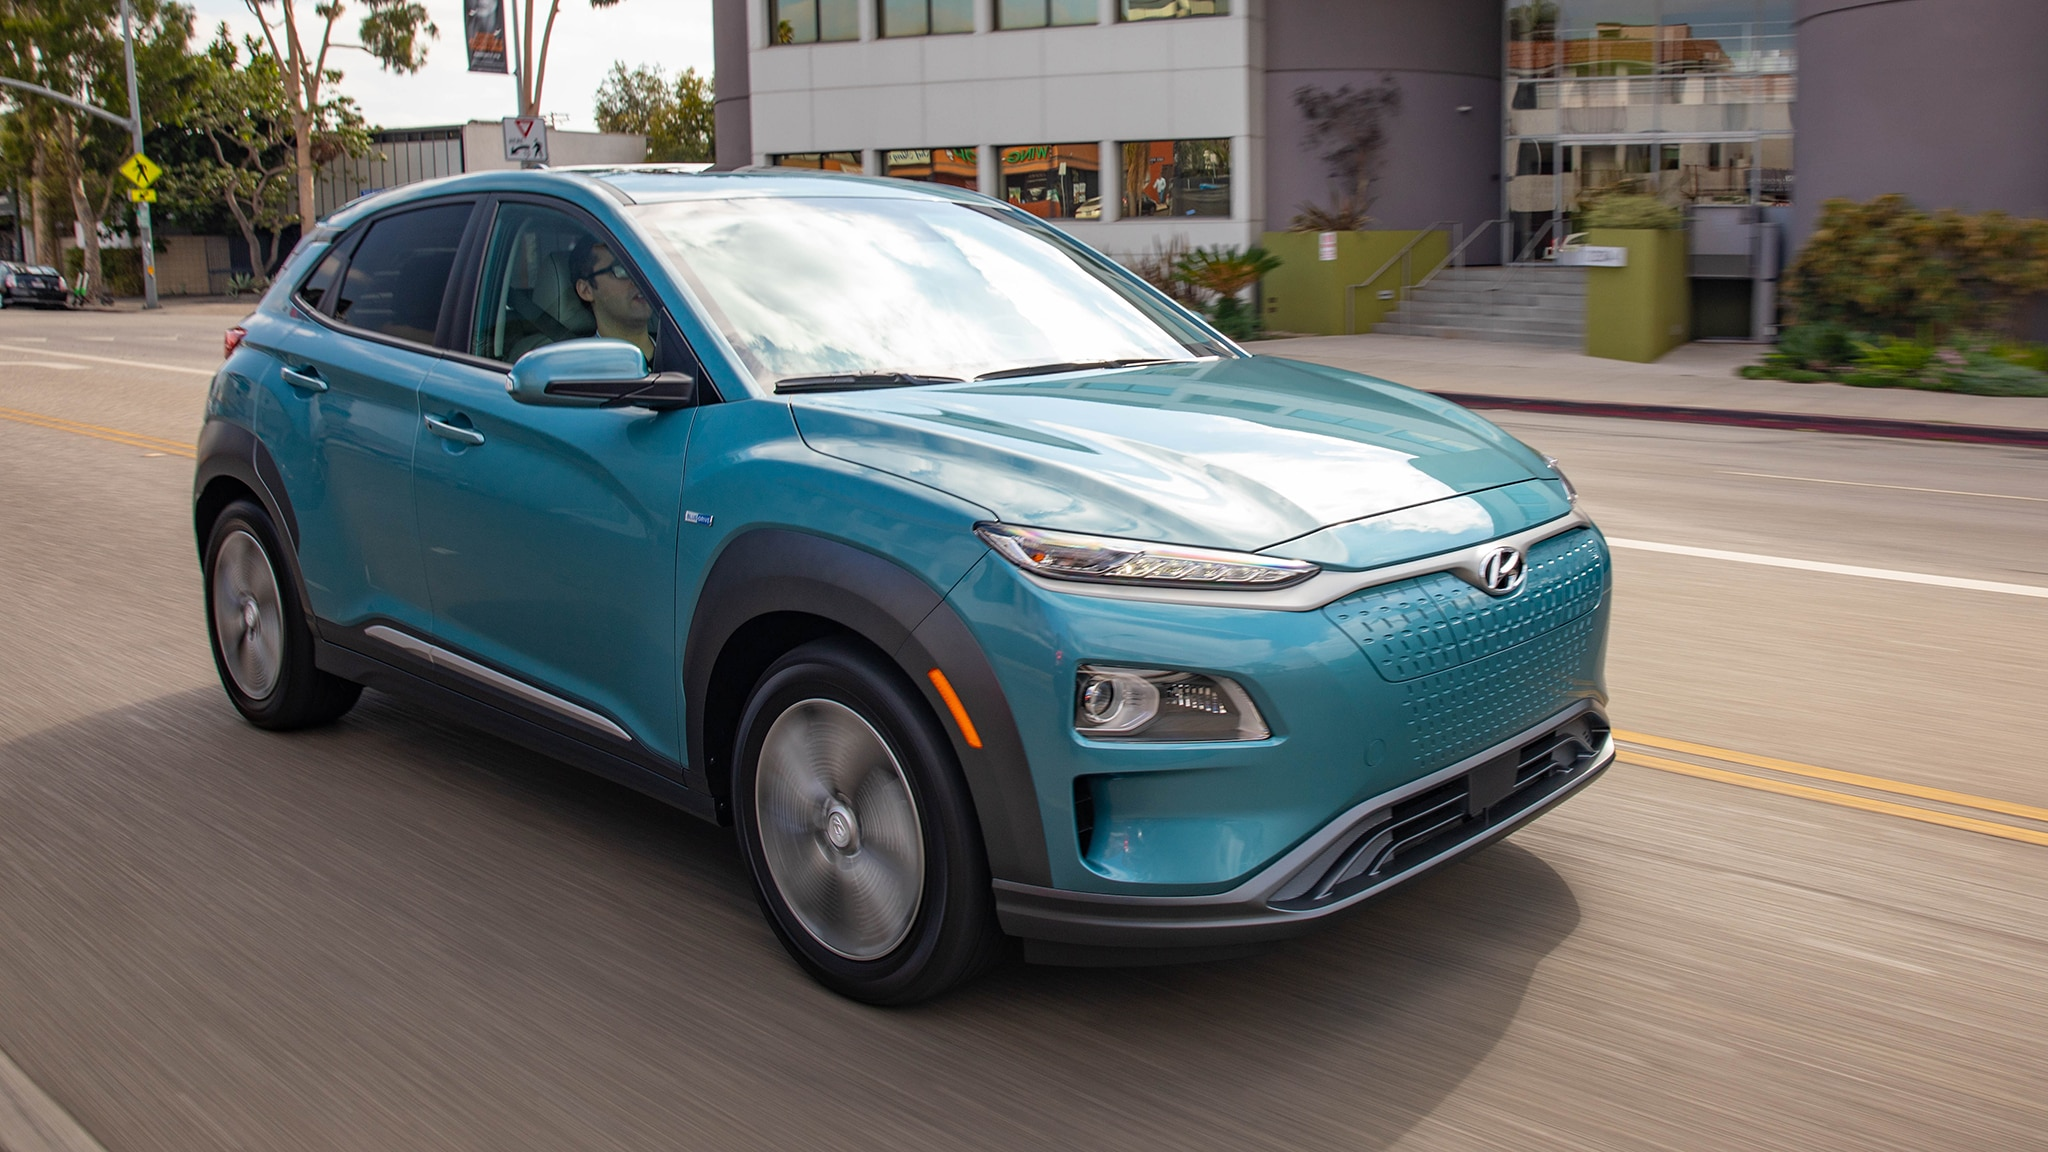 hyundai prices kona electric exactly the same as chevy bolt ev automobile magazine. Black Bedroom Furniture Sets. Home Design Ideas